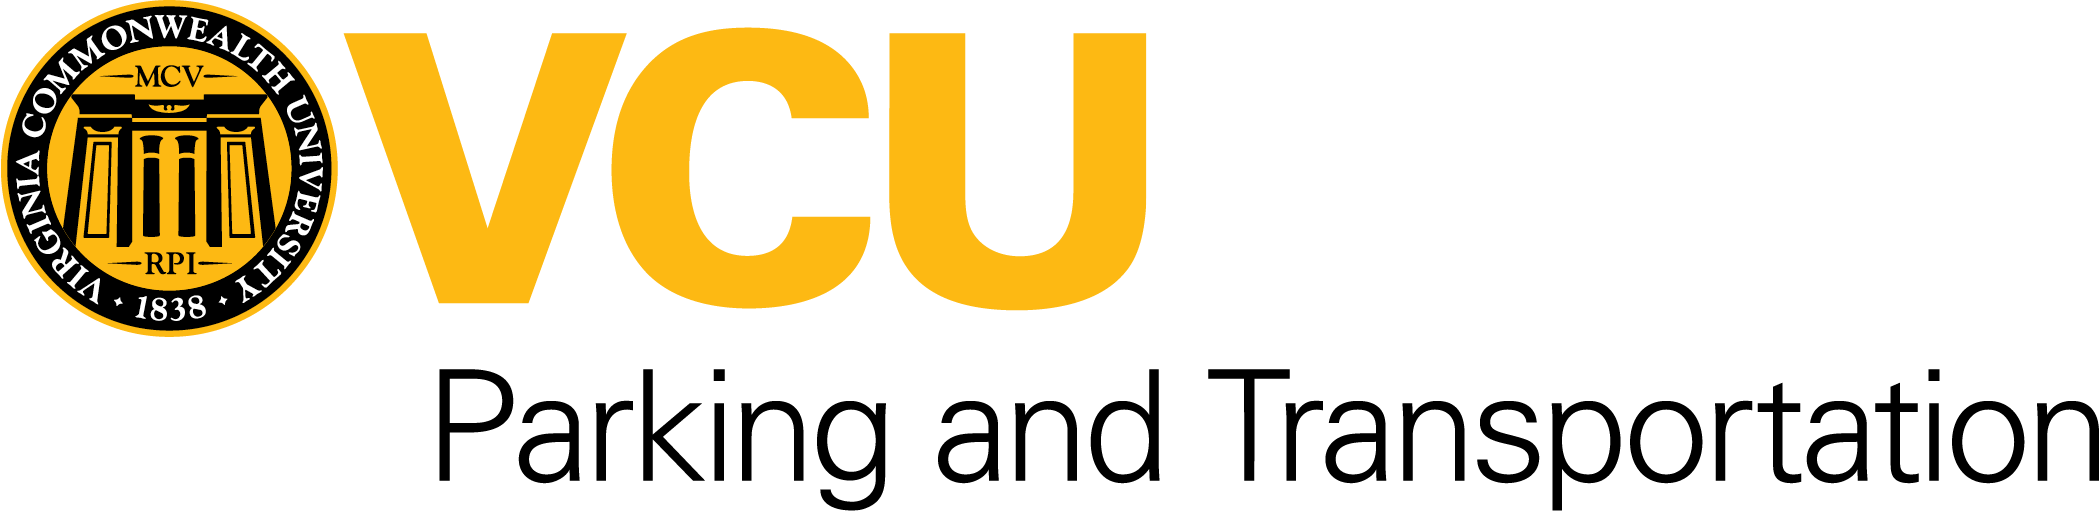 VCU Parking and Transportation Brandmark